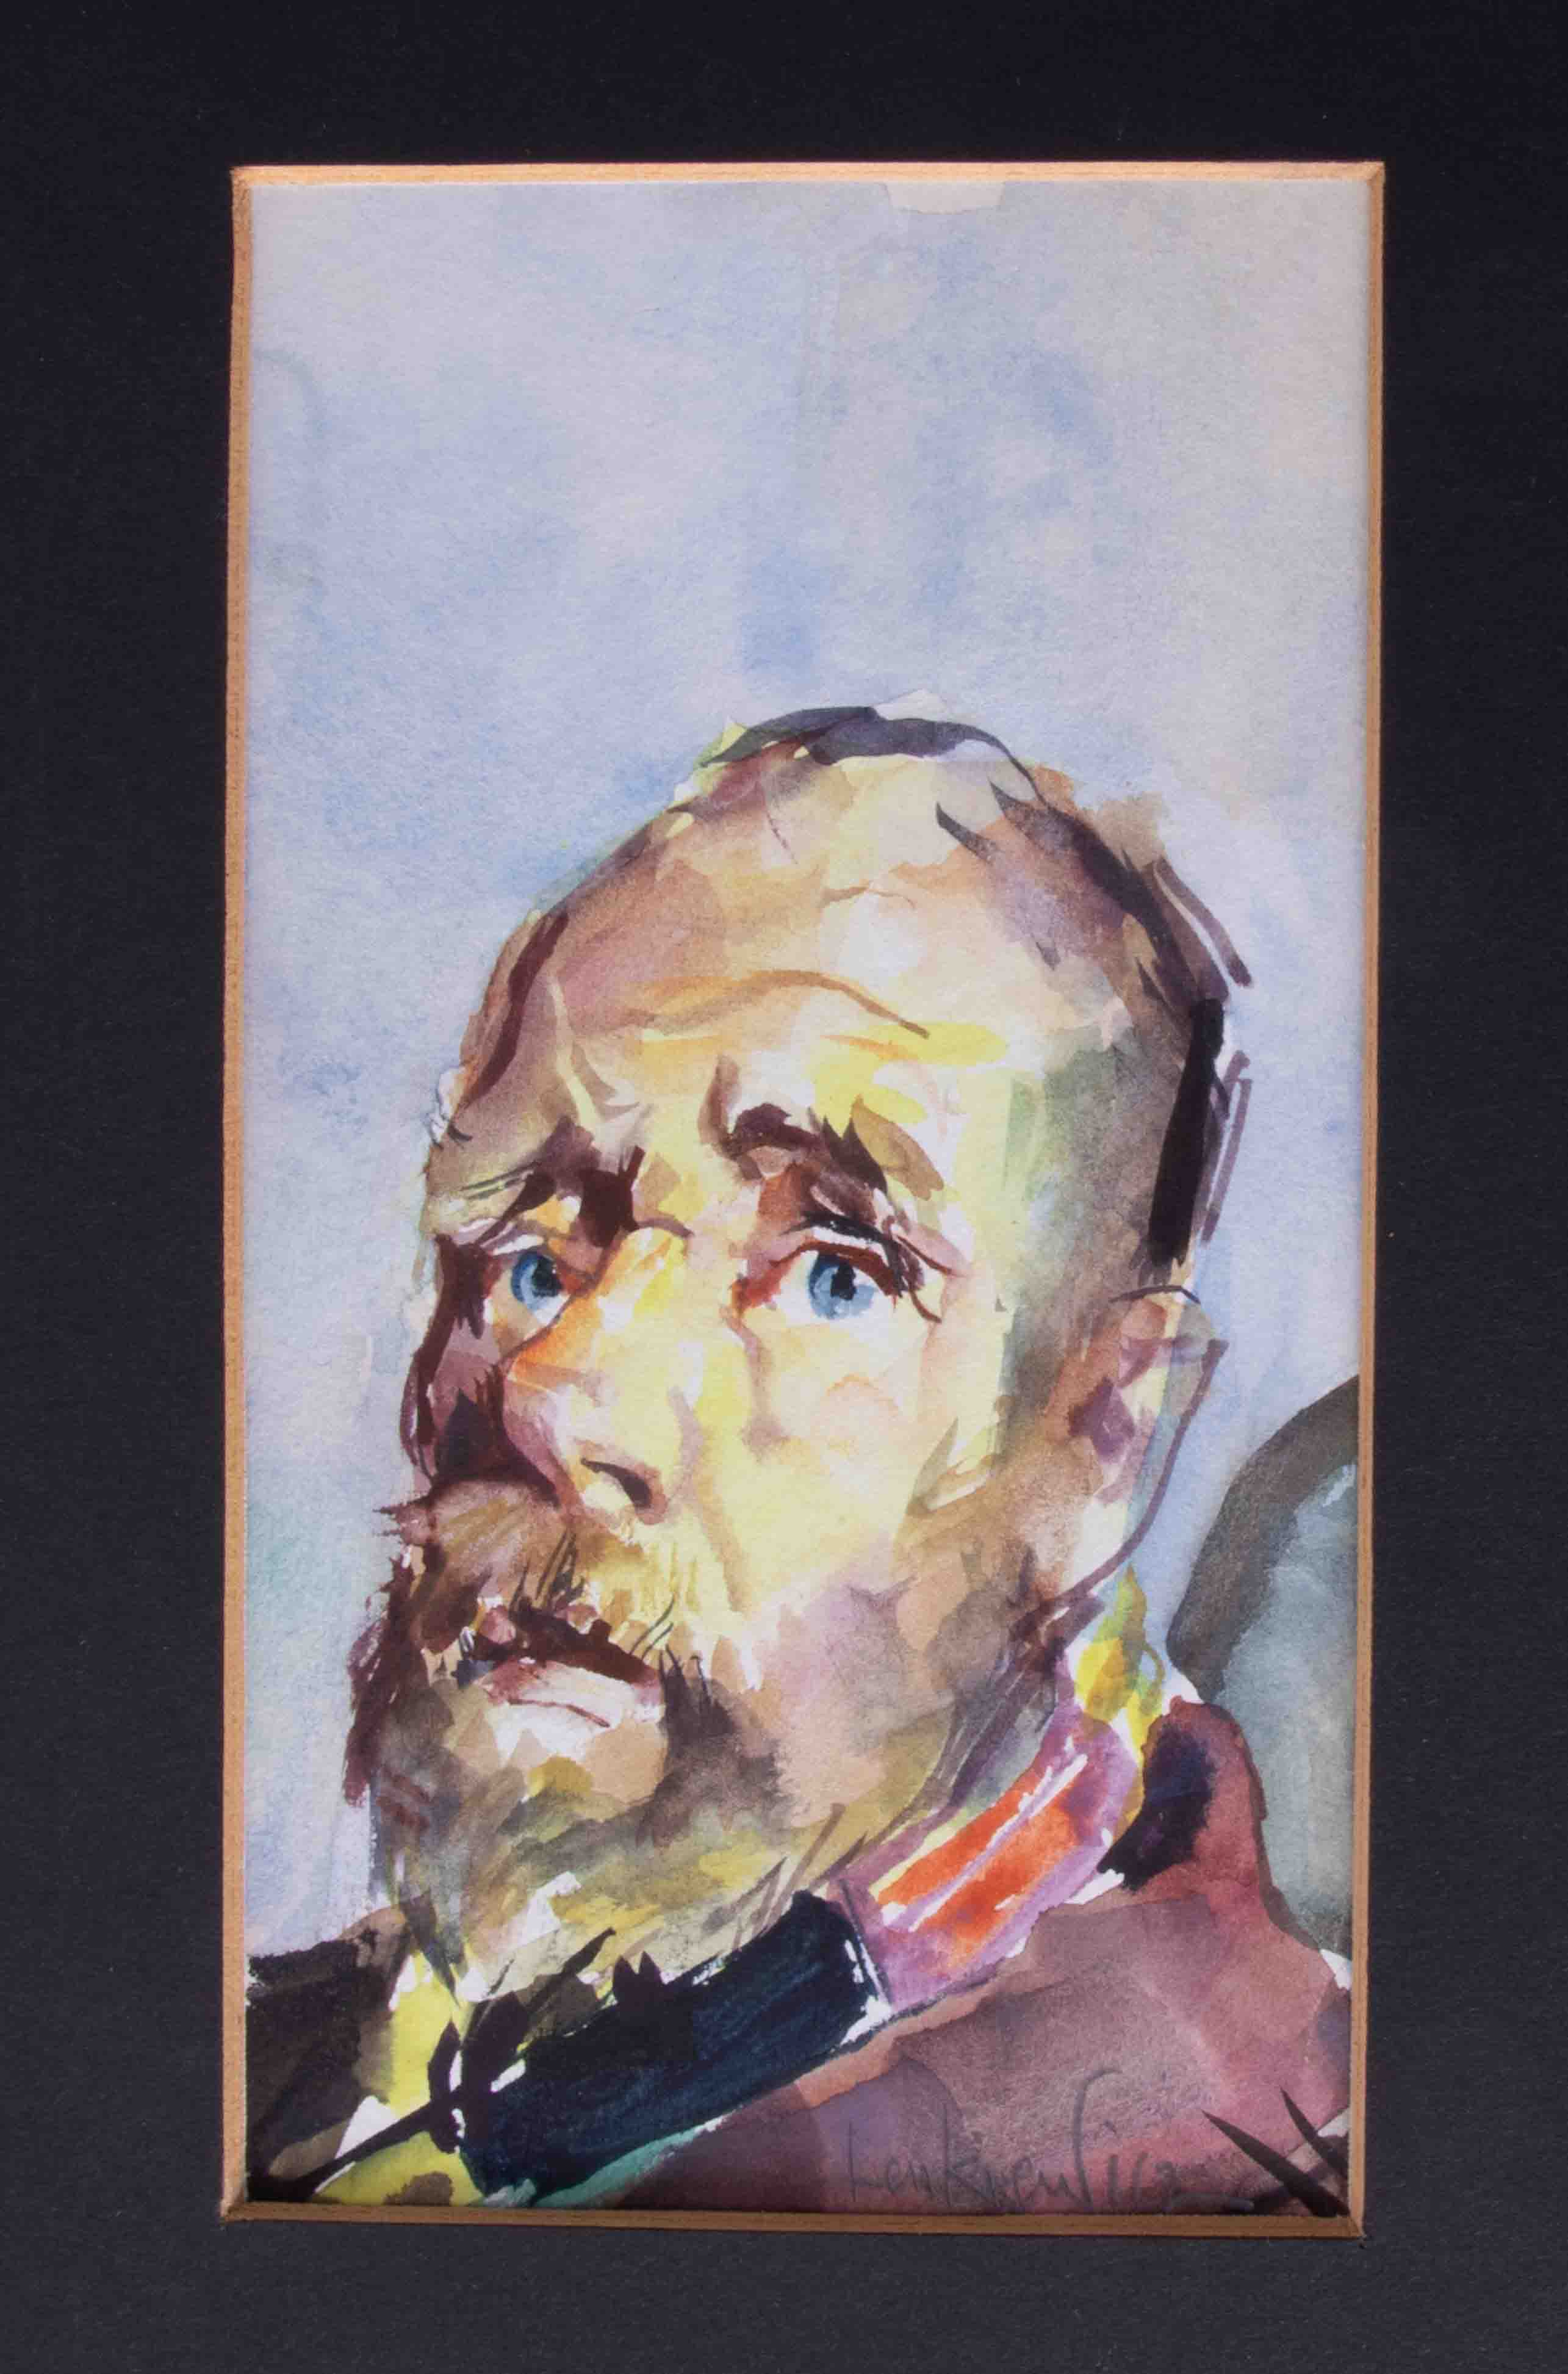 Robert Lenkiewicz (1941-2002), 'The Bishop' watercolour, signed, 16cm x 9cm, unframed. The vagrant